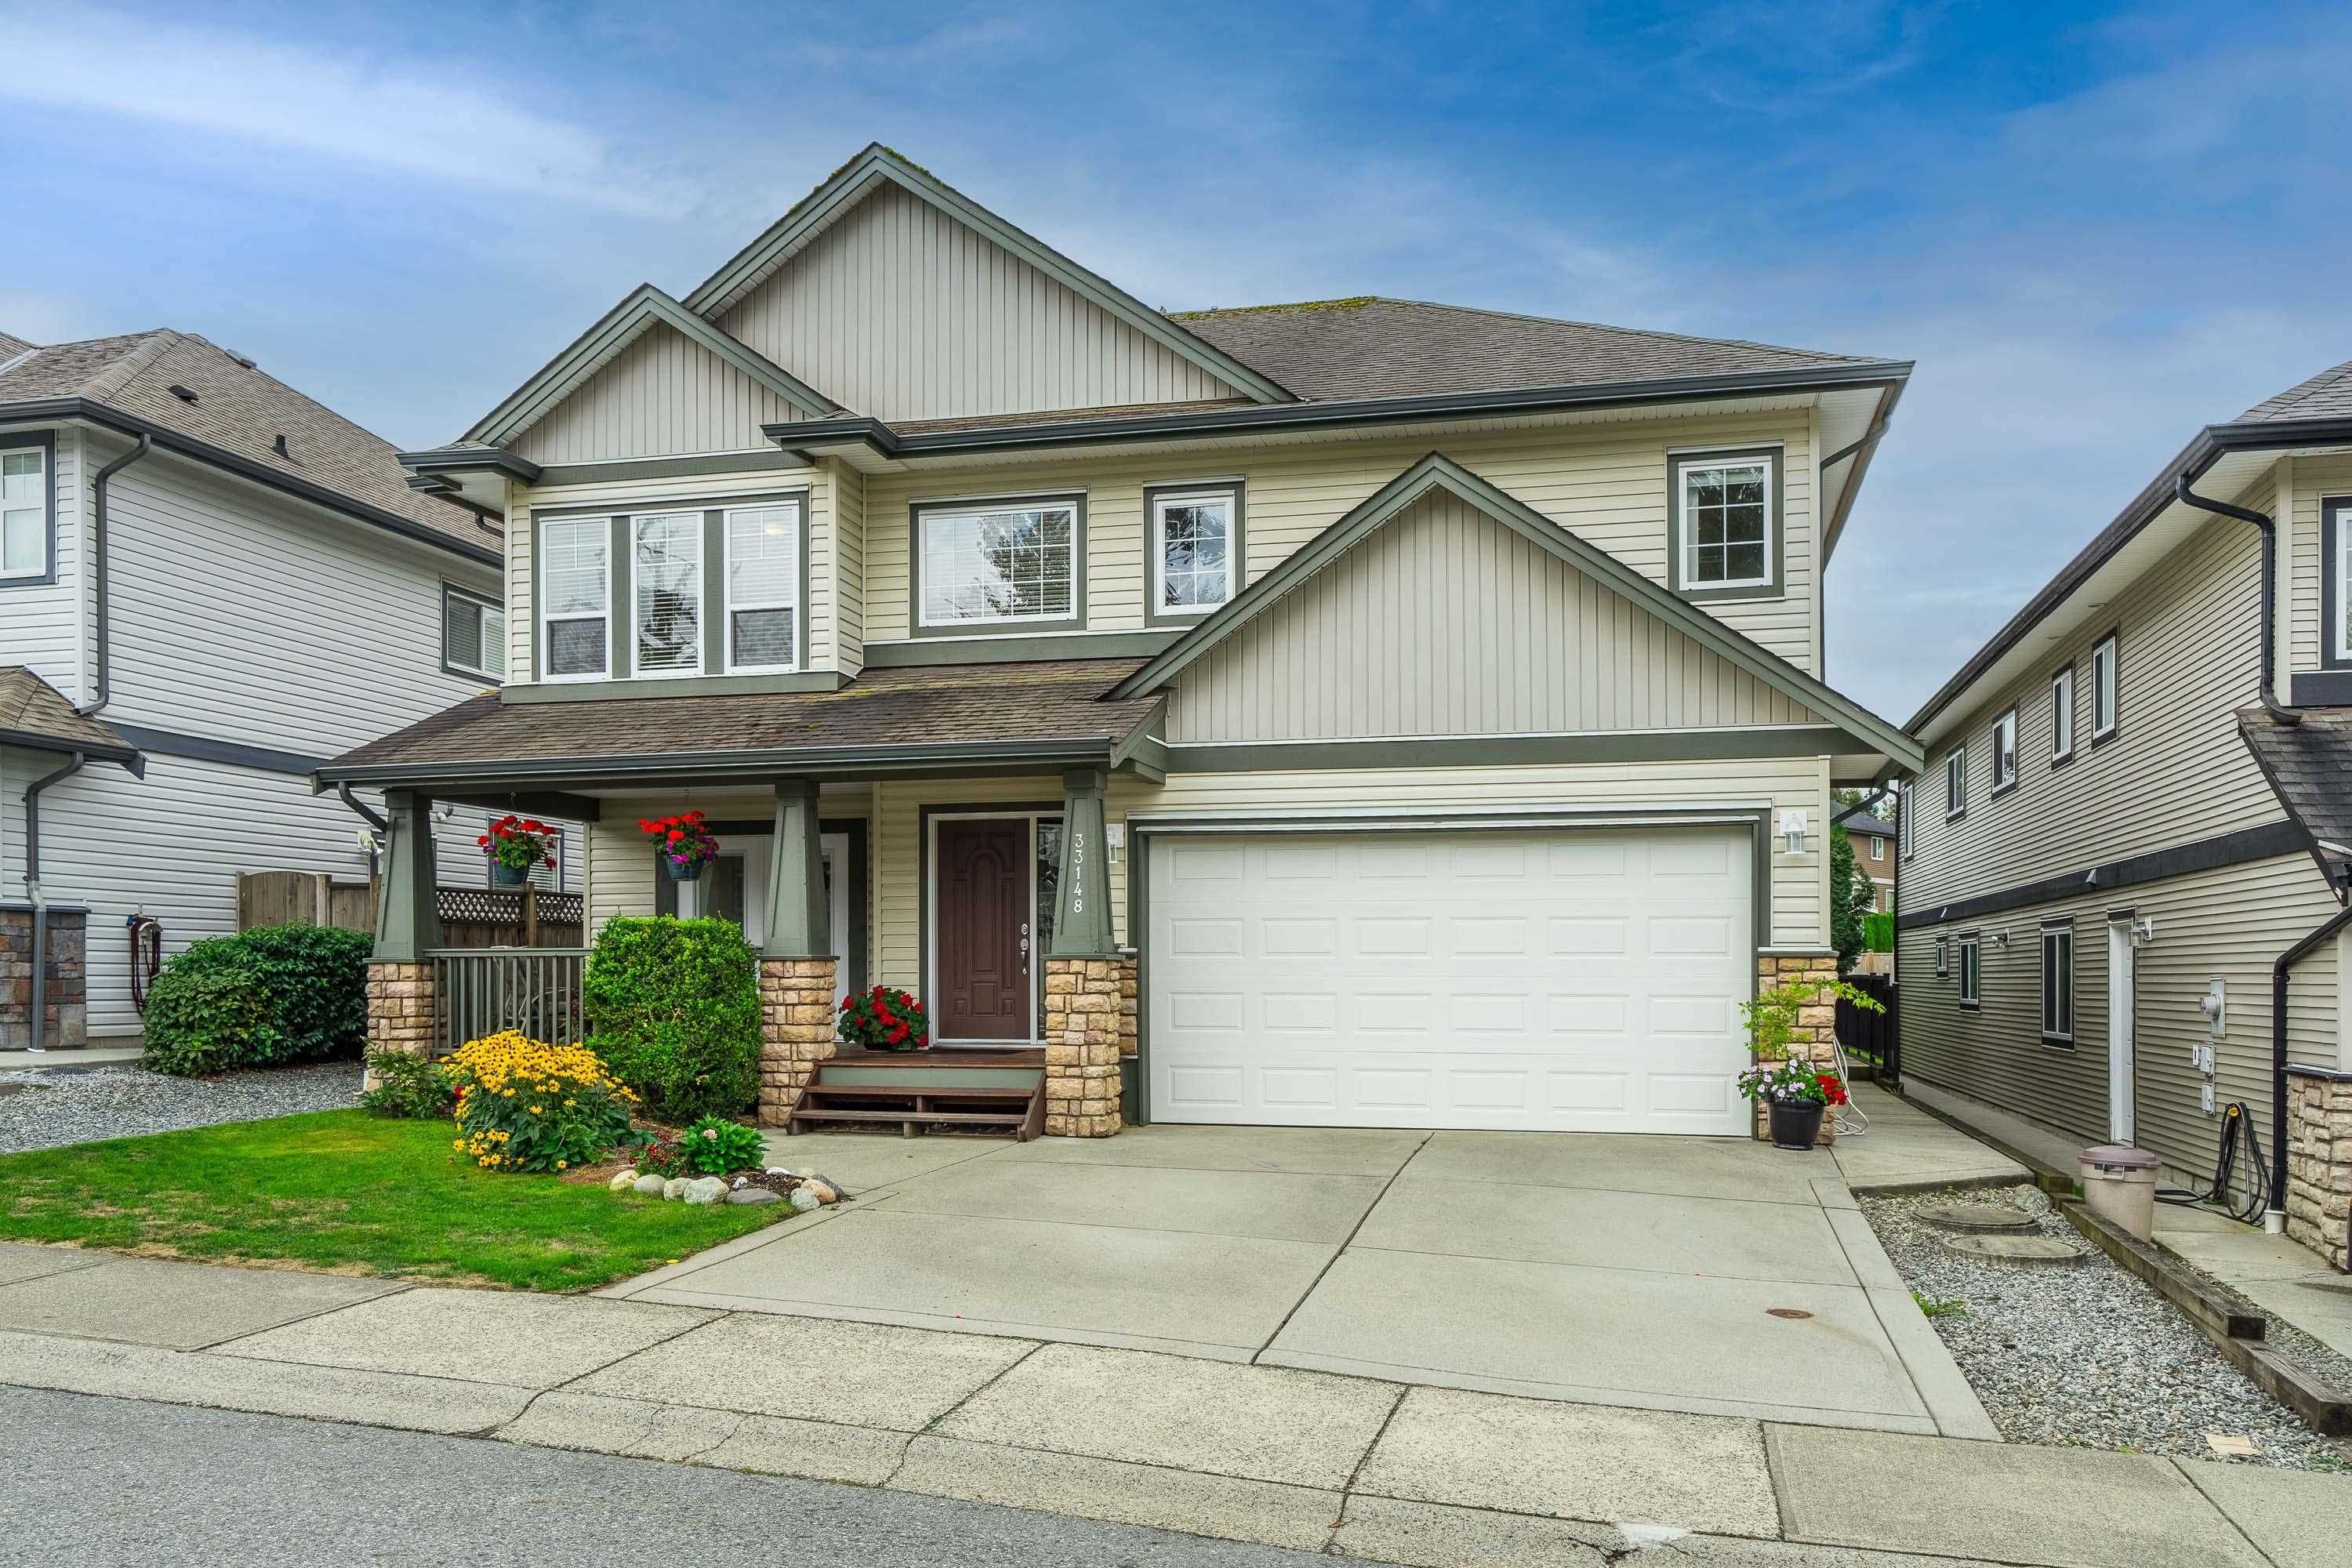 Main Photo: 33148 DALKE Avenue in Mission: Mission BC House for sale : MLS®# R2624049